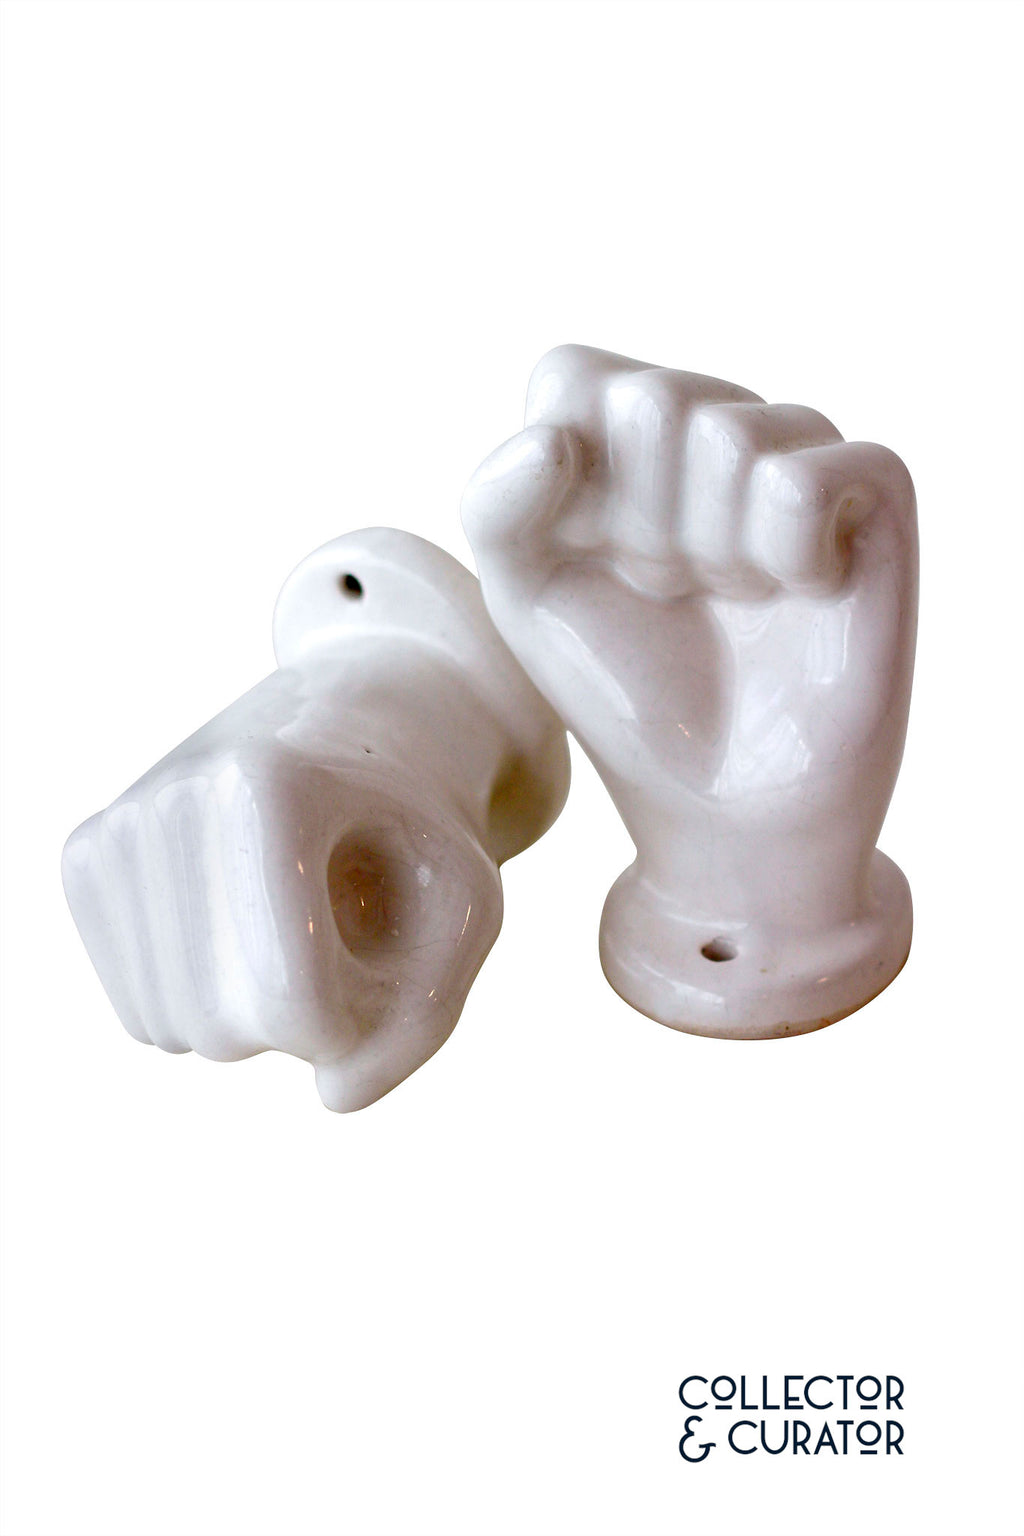 Pair of Ceramic Hands - Collector & Curator